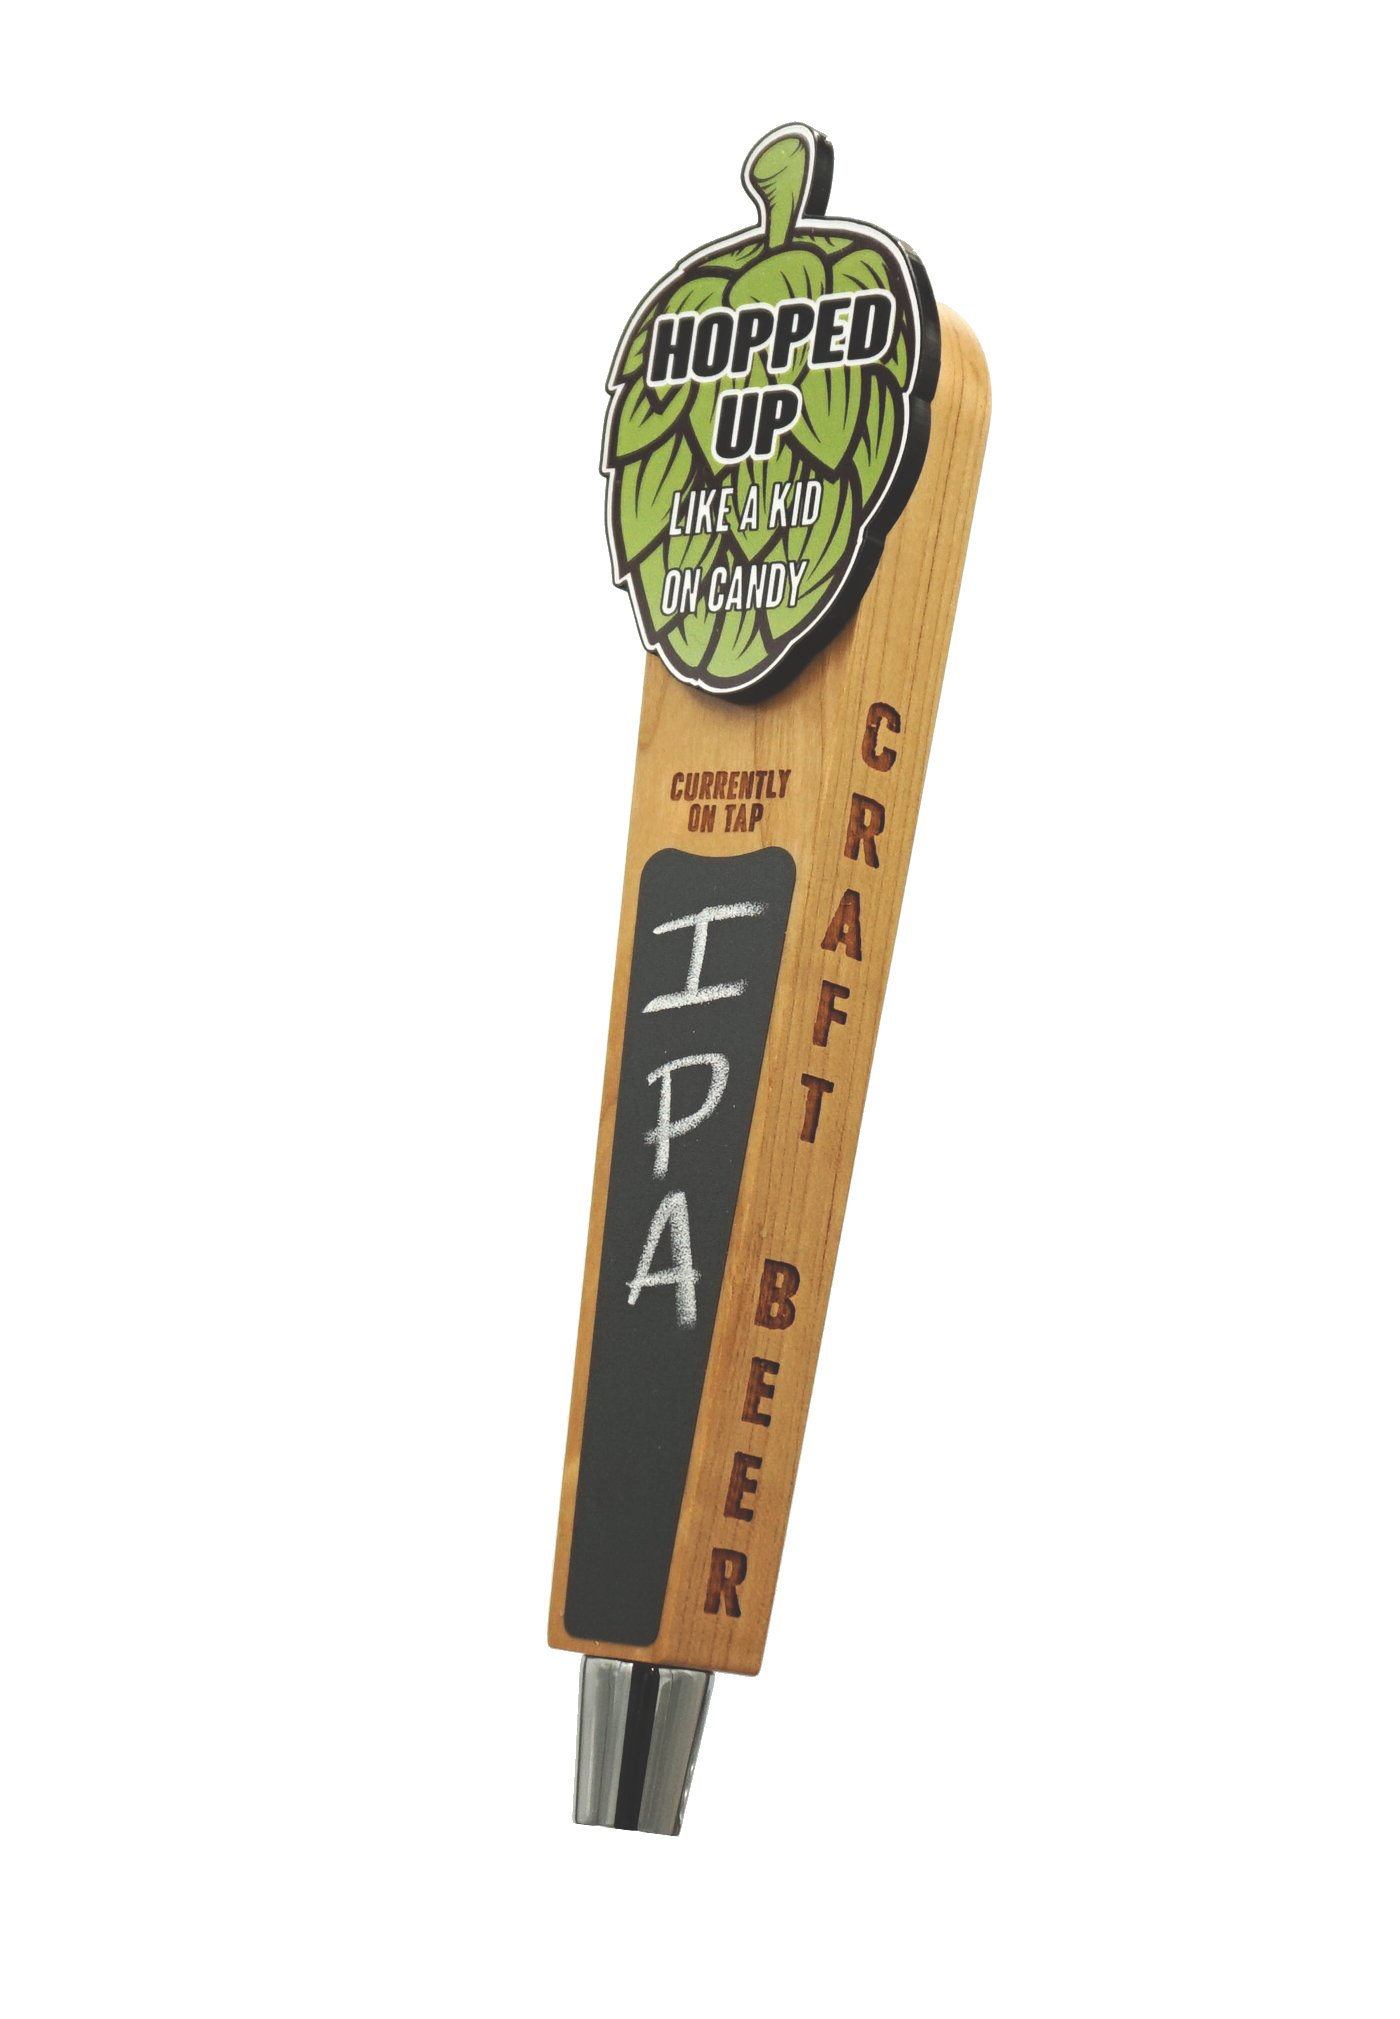 Beer Tap Handle with Chalkboard-Hopped Up Edition. Cool wood tap with laser engraved sides and full color logo. Hopped up like a kid on candy.